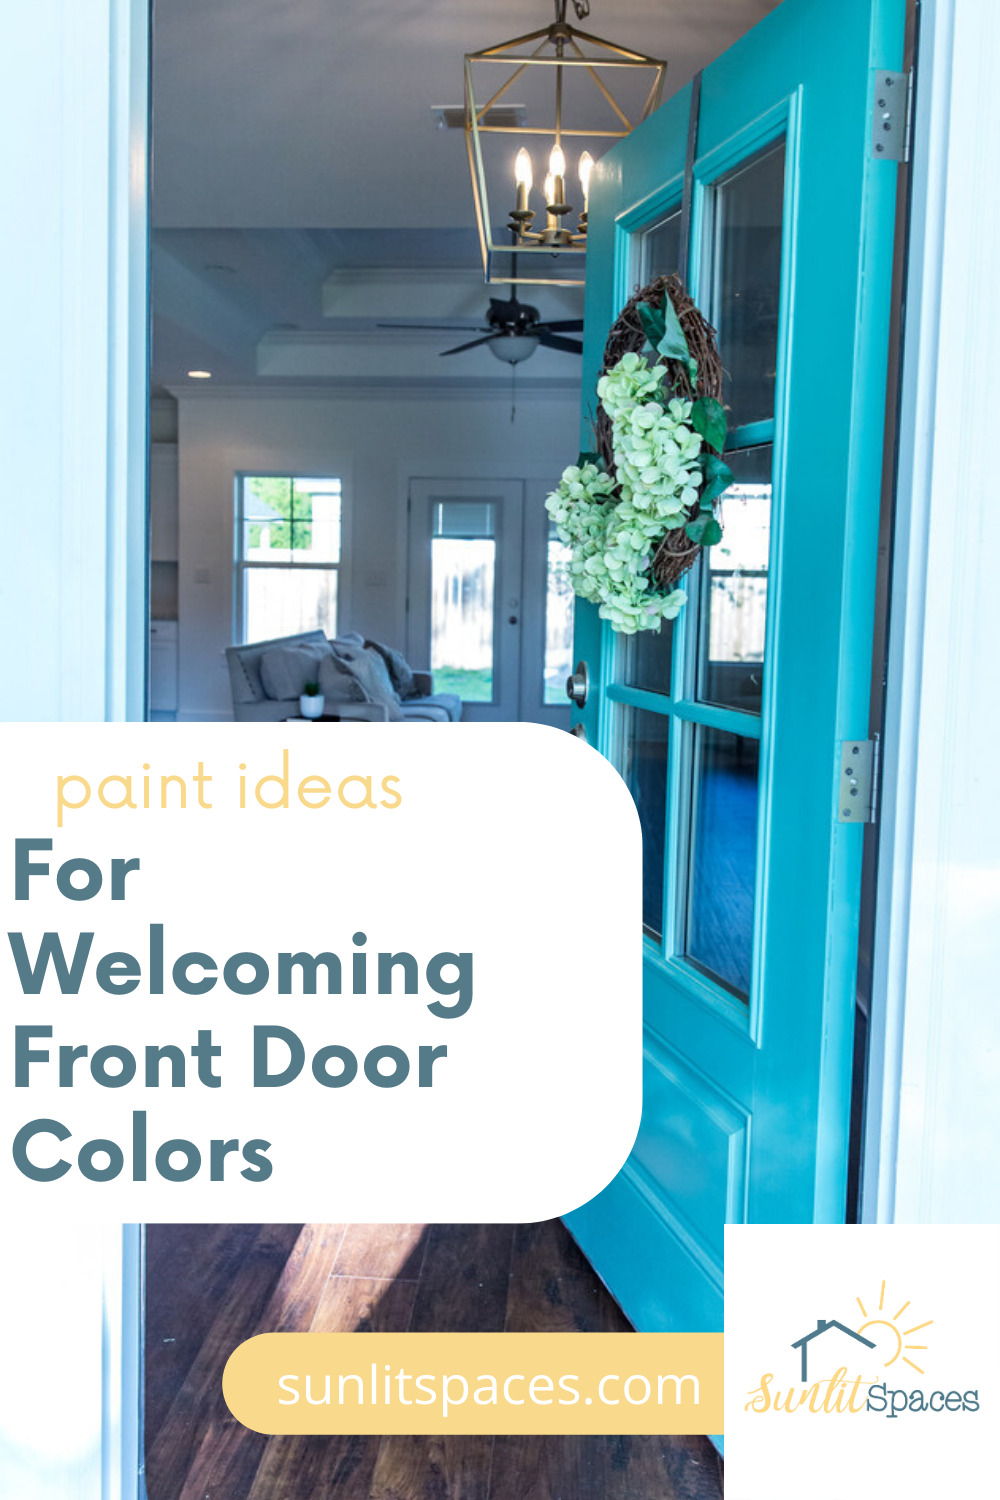 The 7 Most Welcoming Front Door Colors Sunlit Spaces Diy Home Decor Holiday And More